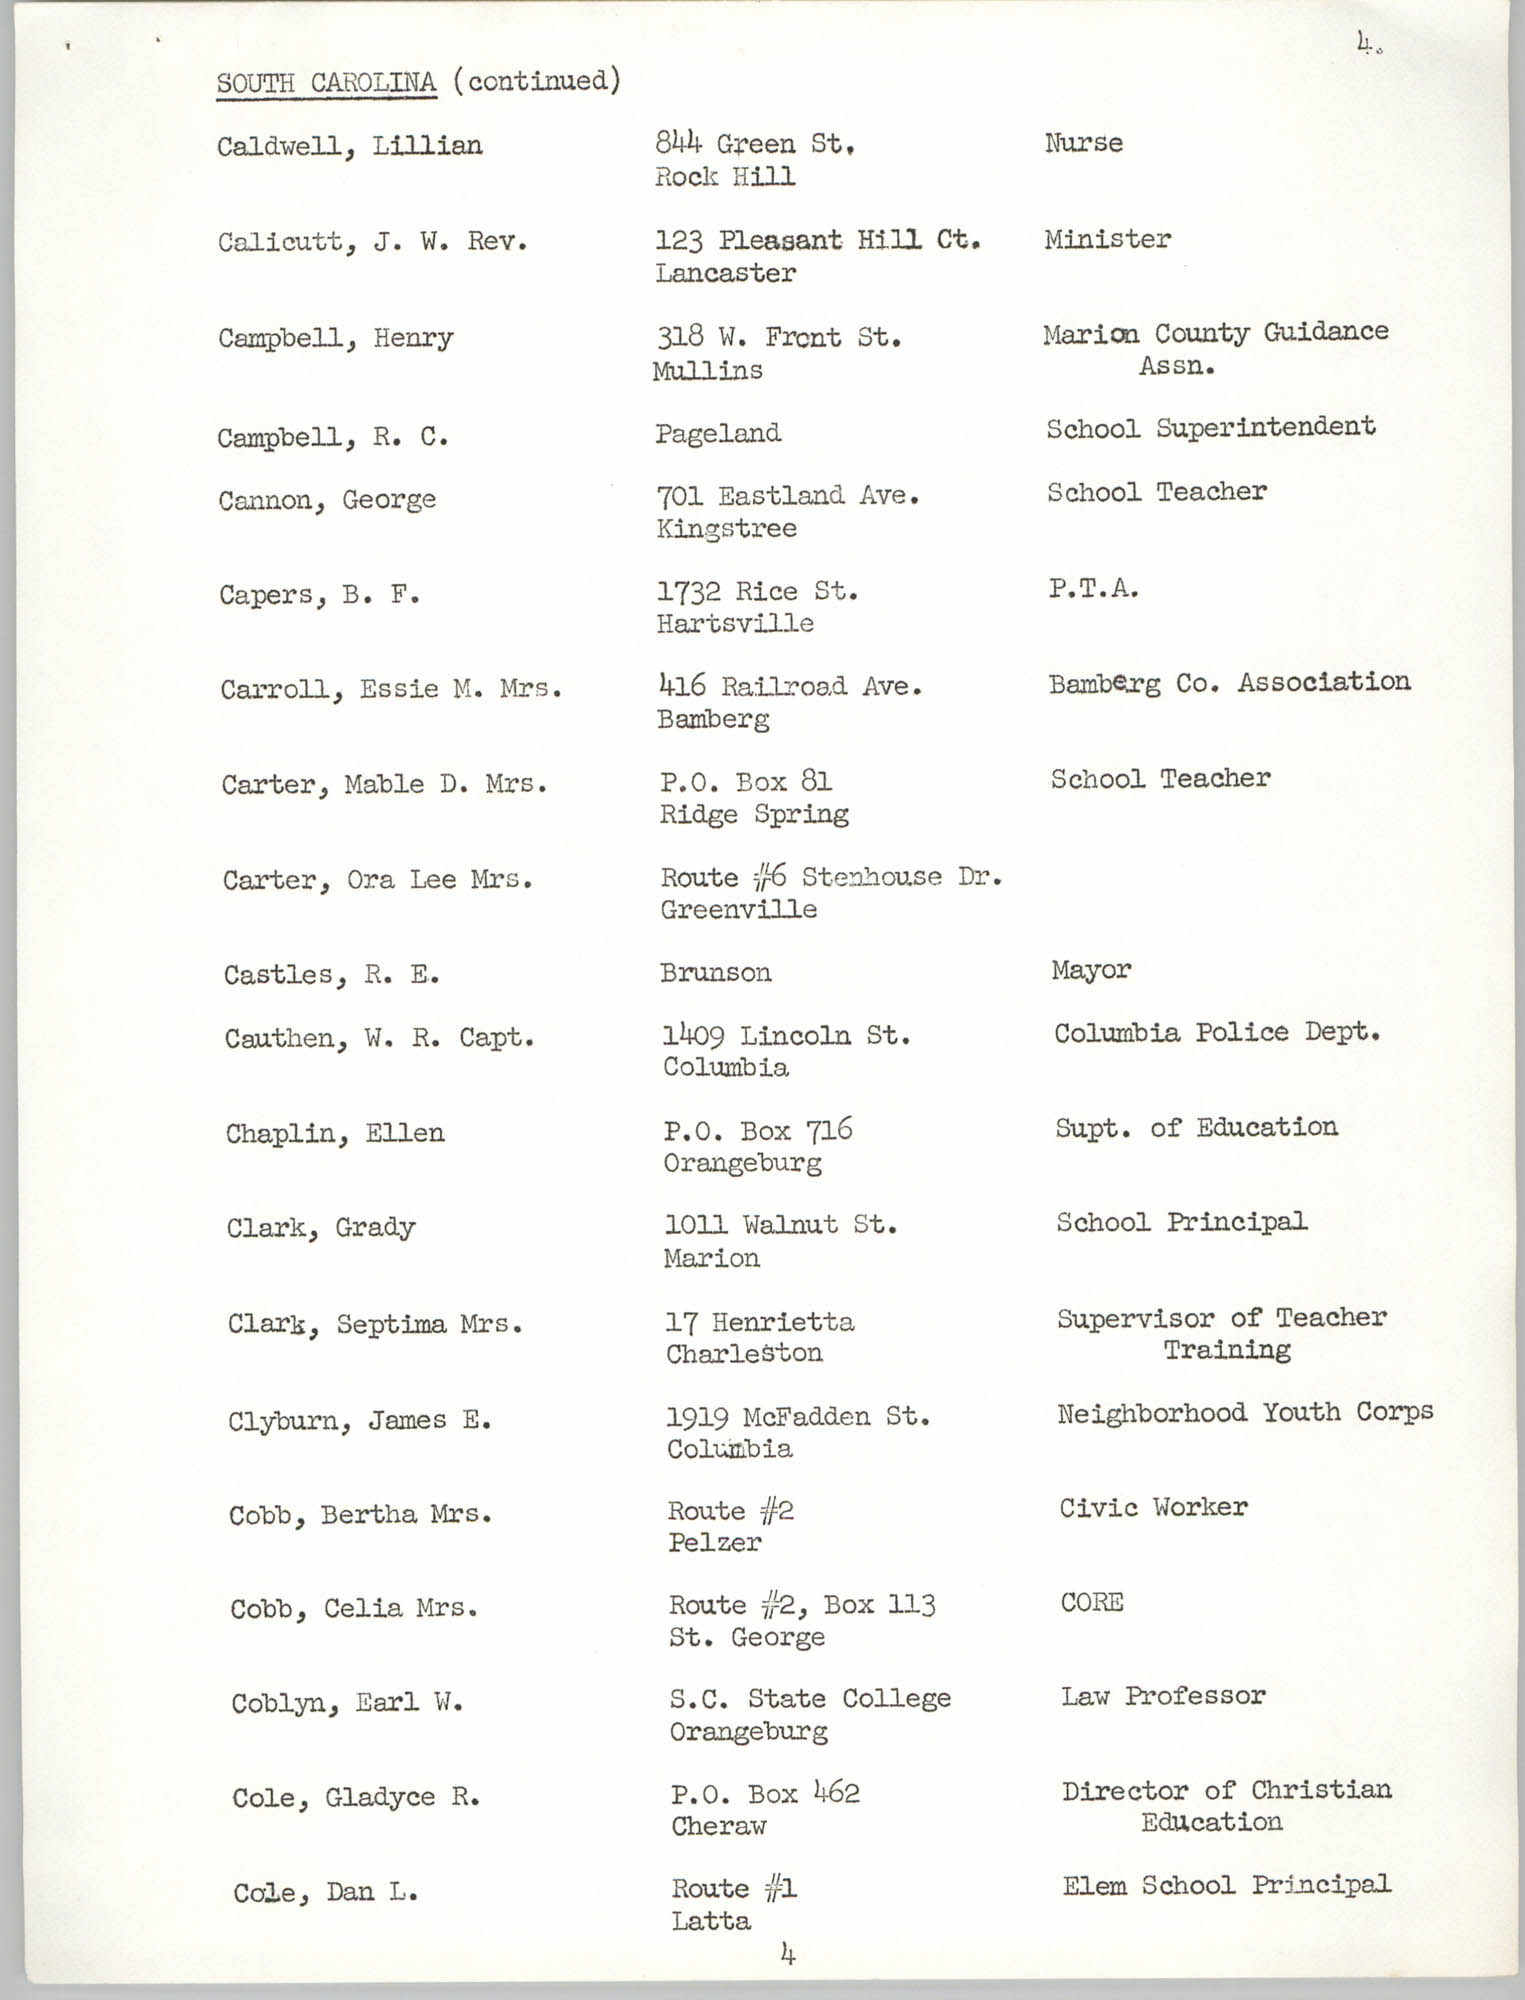 Registration, U.S. Commission on Civil Rights, Statewide Education Desegregation Conference, Page 4